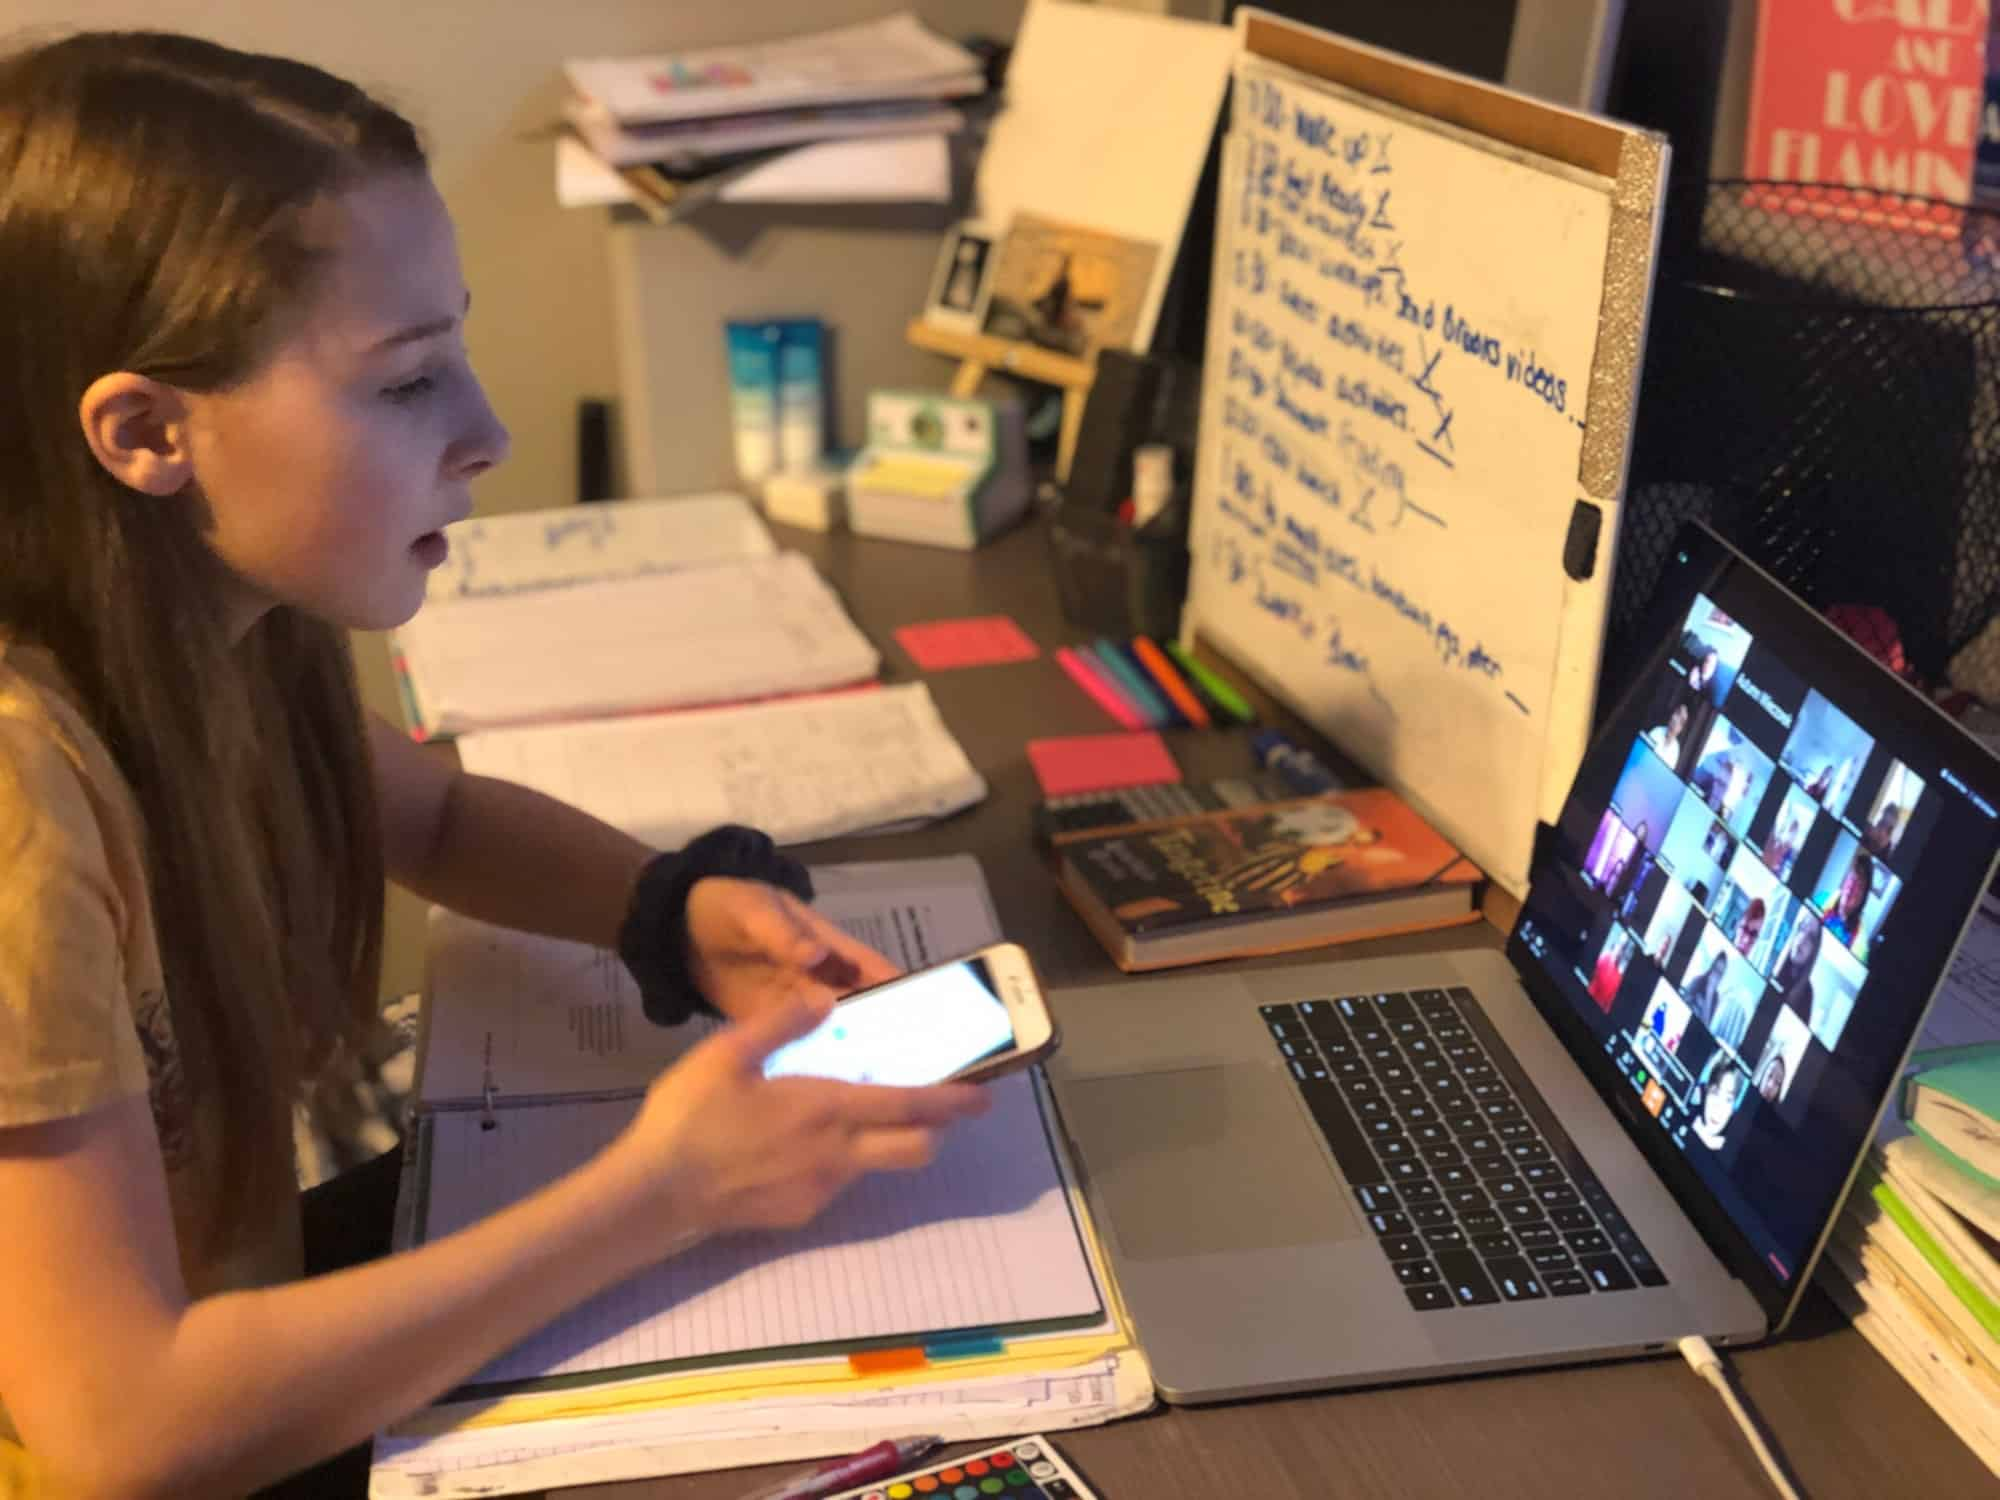 Teenage girl at home on a zoom call with her teacher and class.